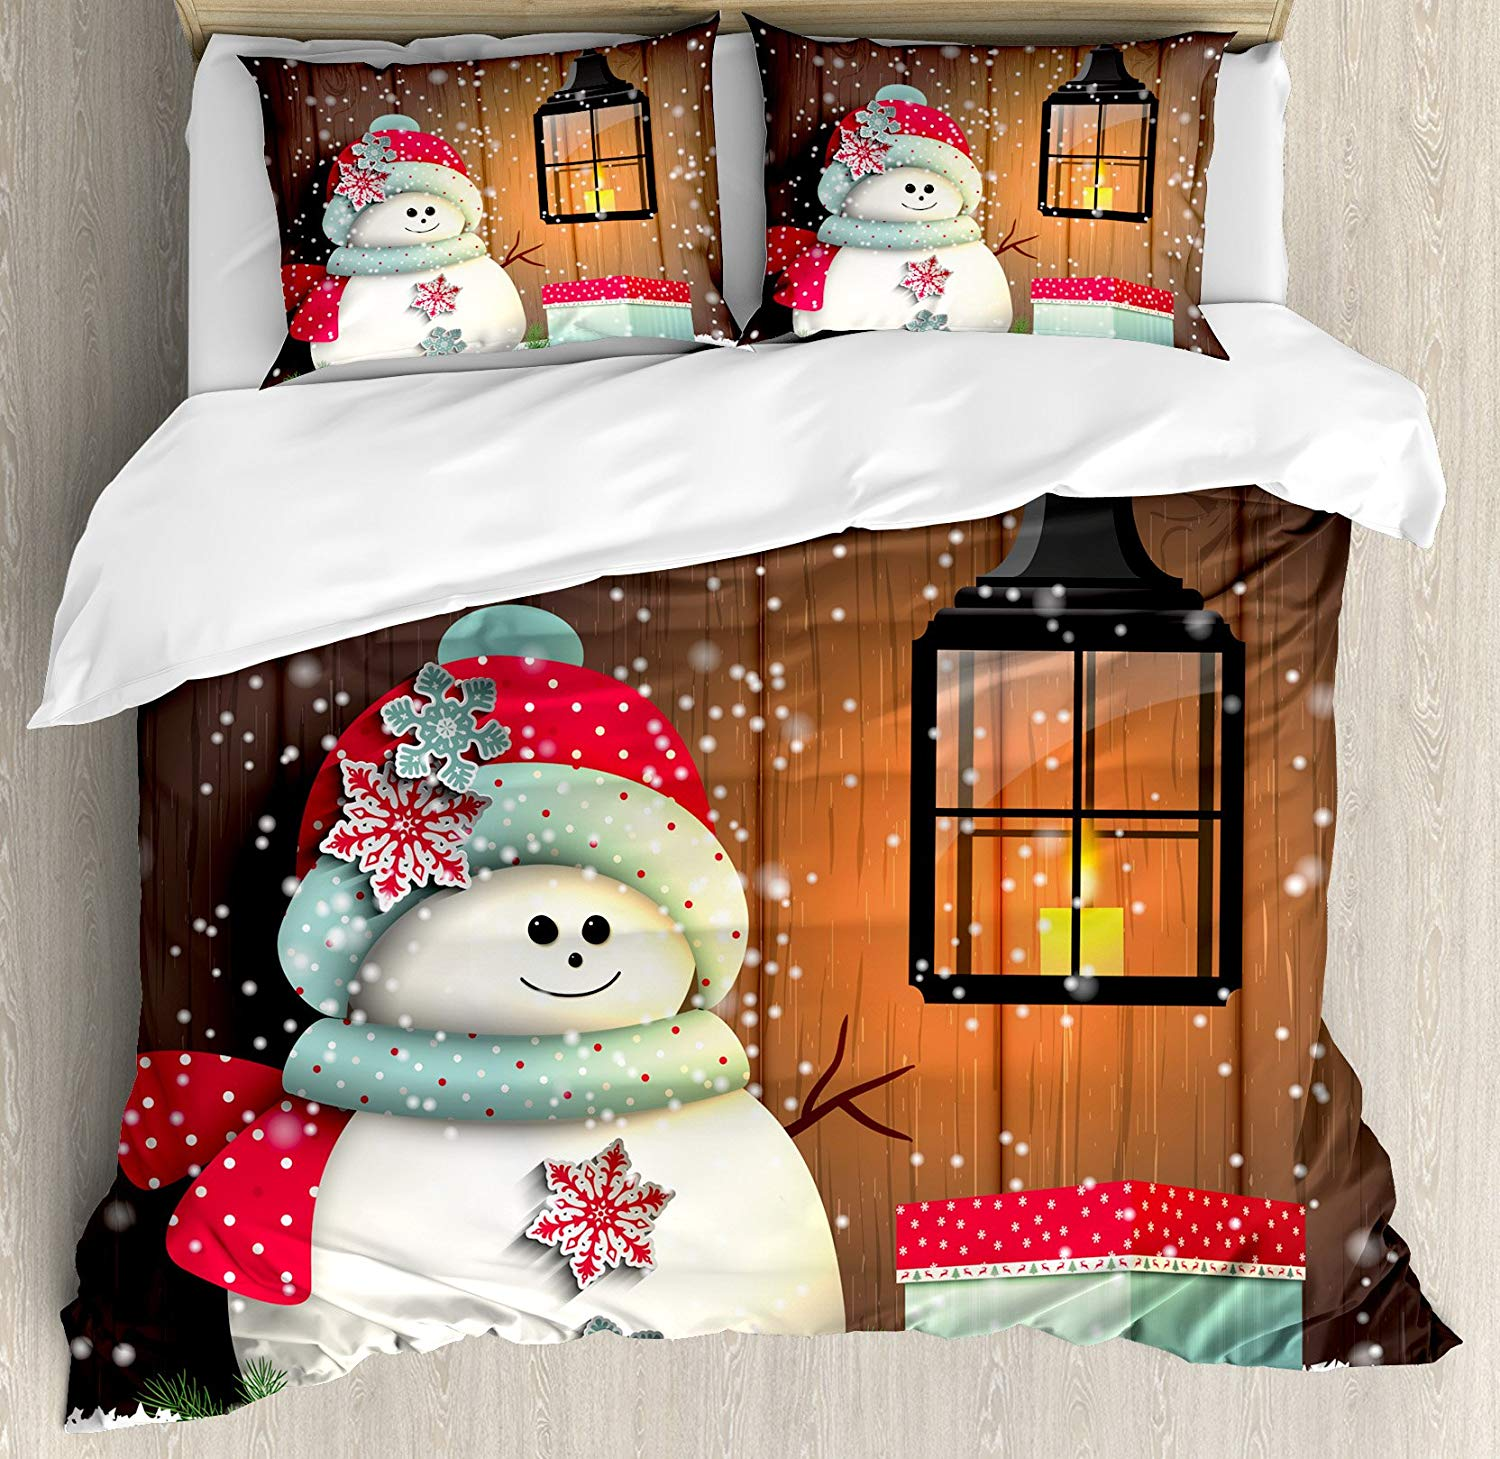 Ambesonne Christmas Duvet Cover Set - Buy Christmas Duvet Covers